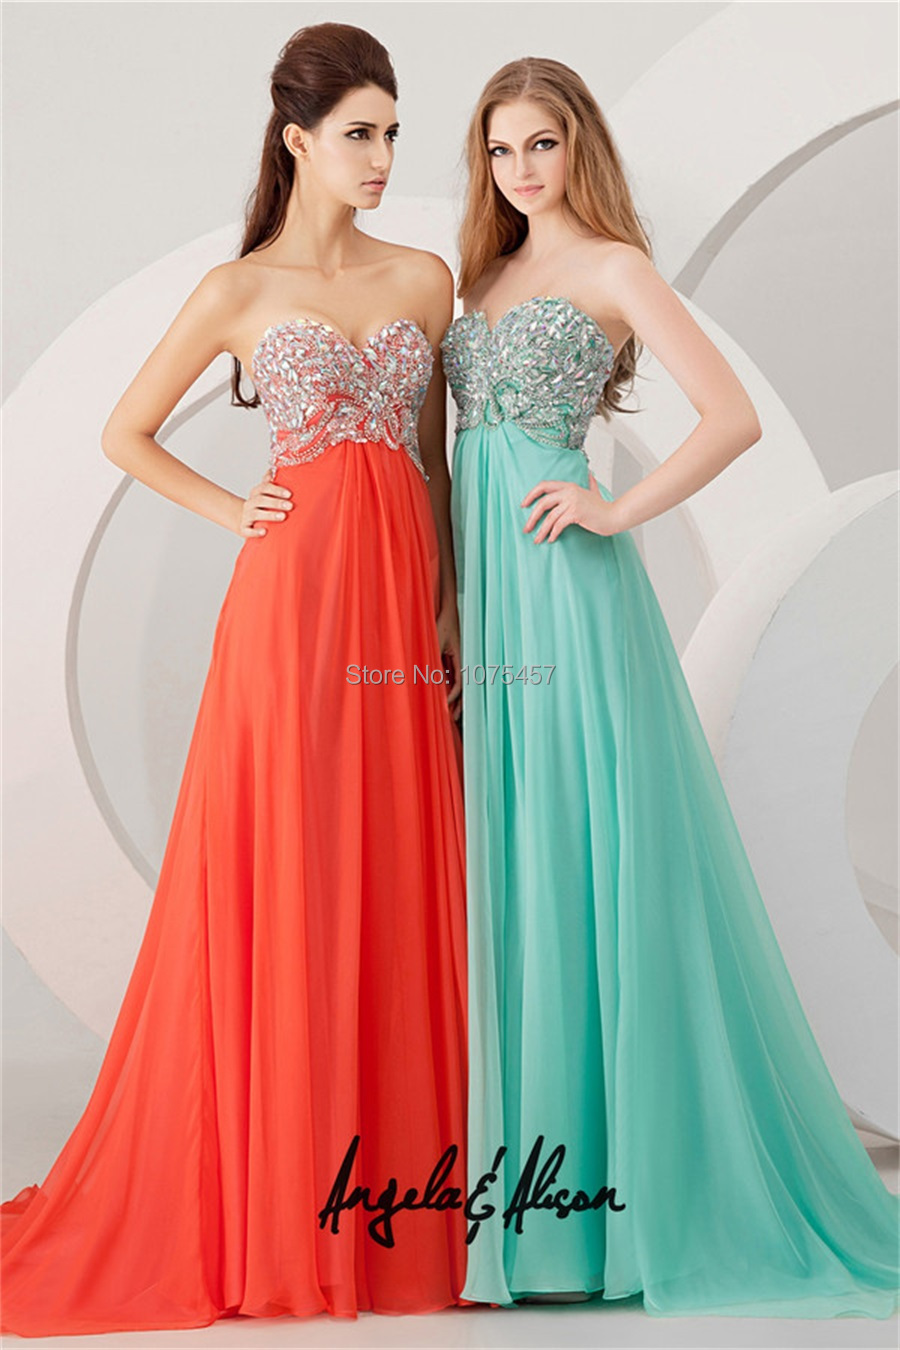 Awesome Sell Prom Dresses Crest - All Wedding Dresses ...